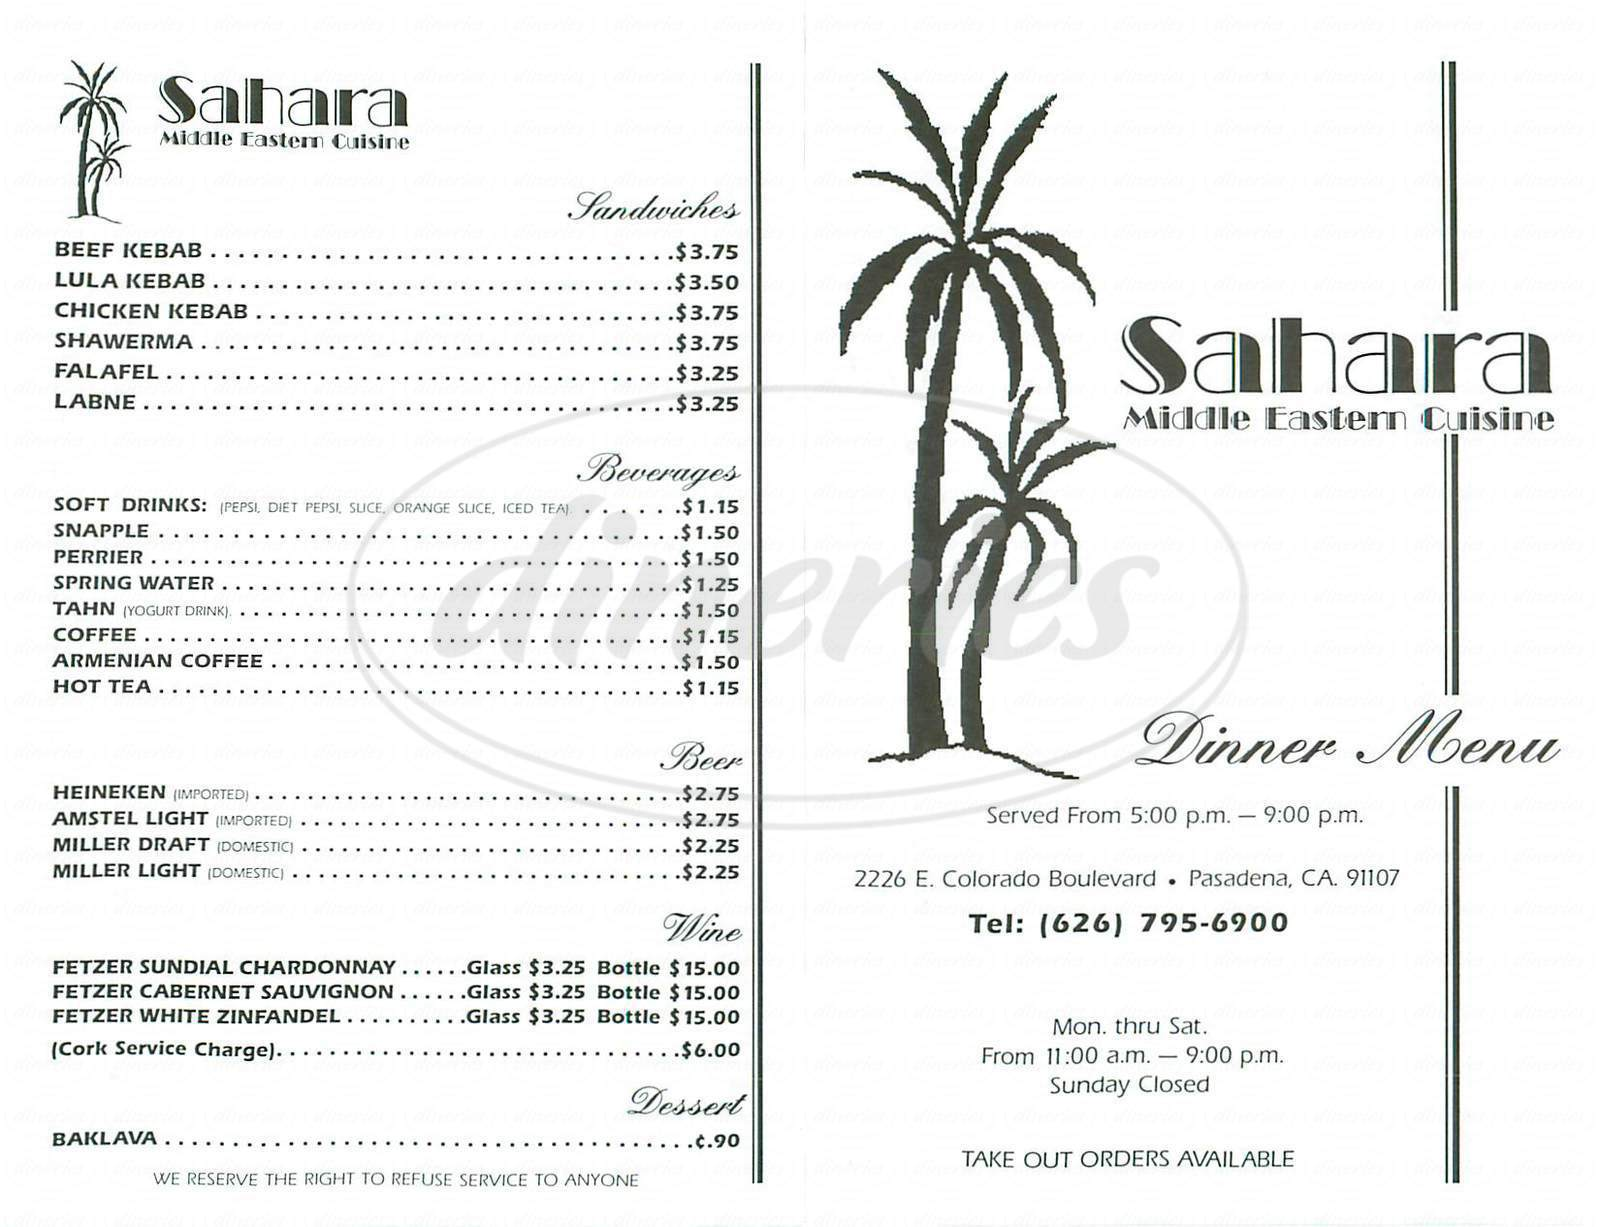 menu for Sahara Middle Eastern Cuisine